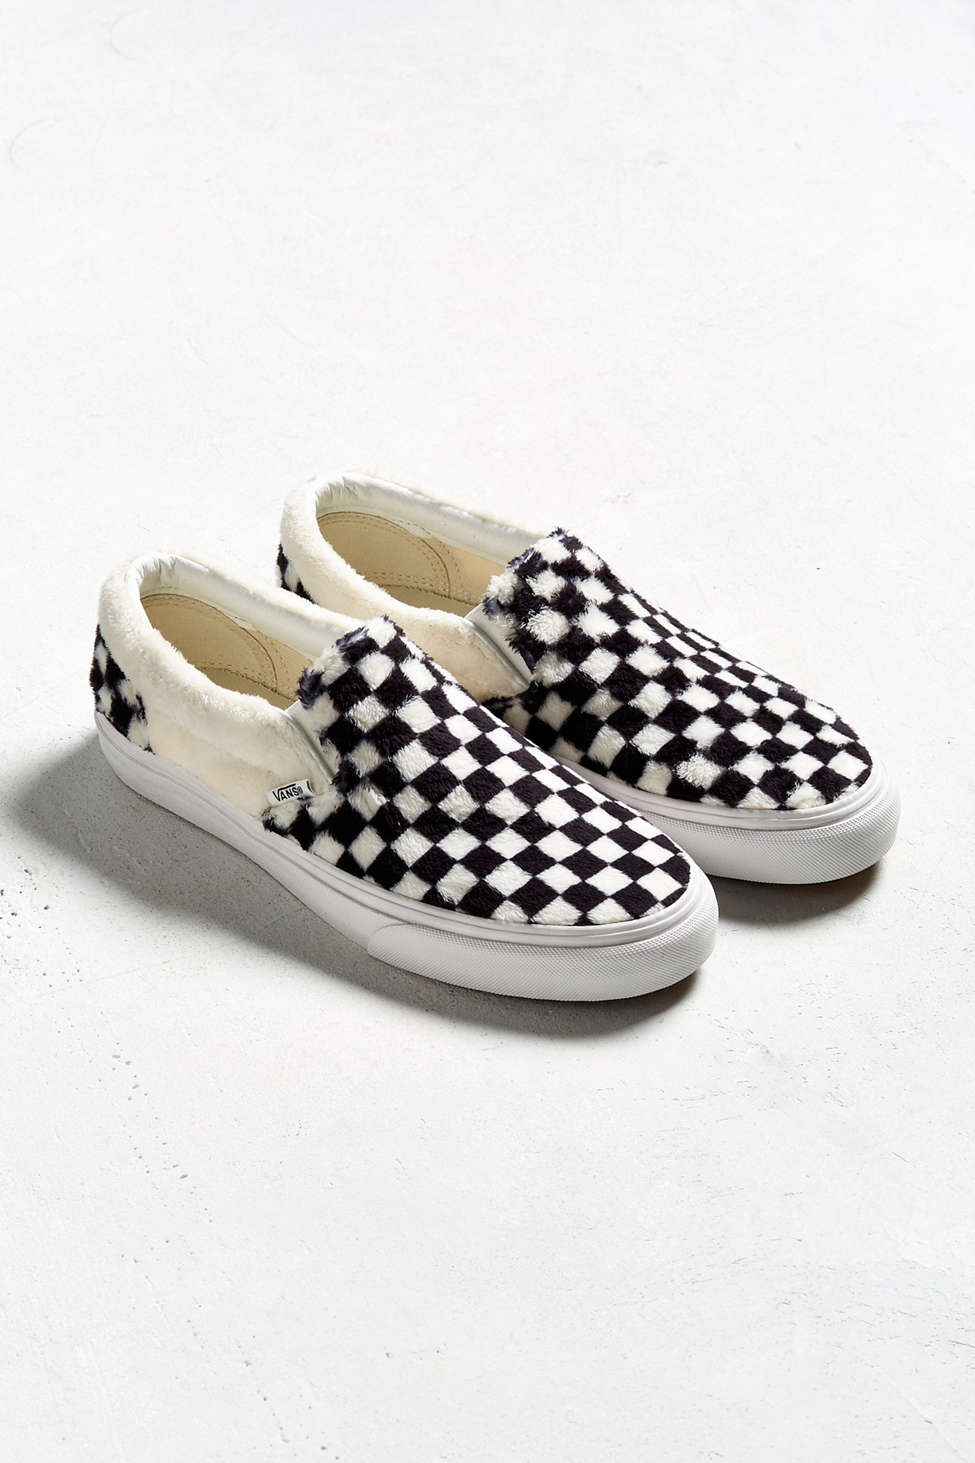 Vans Classic Slip On Checkerboard Sherpa Sneaker Urban